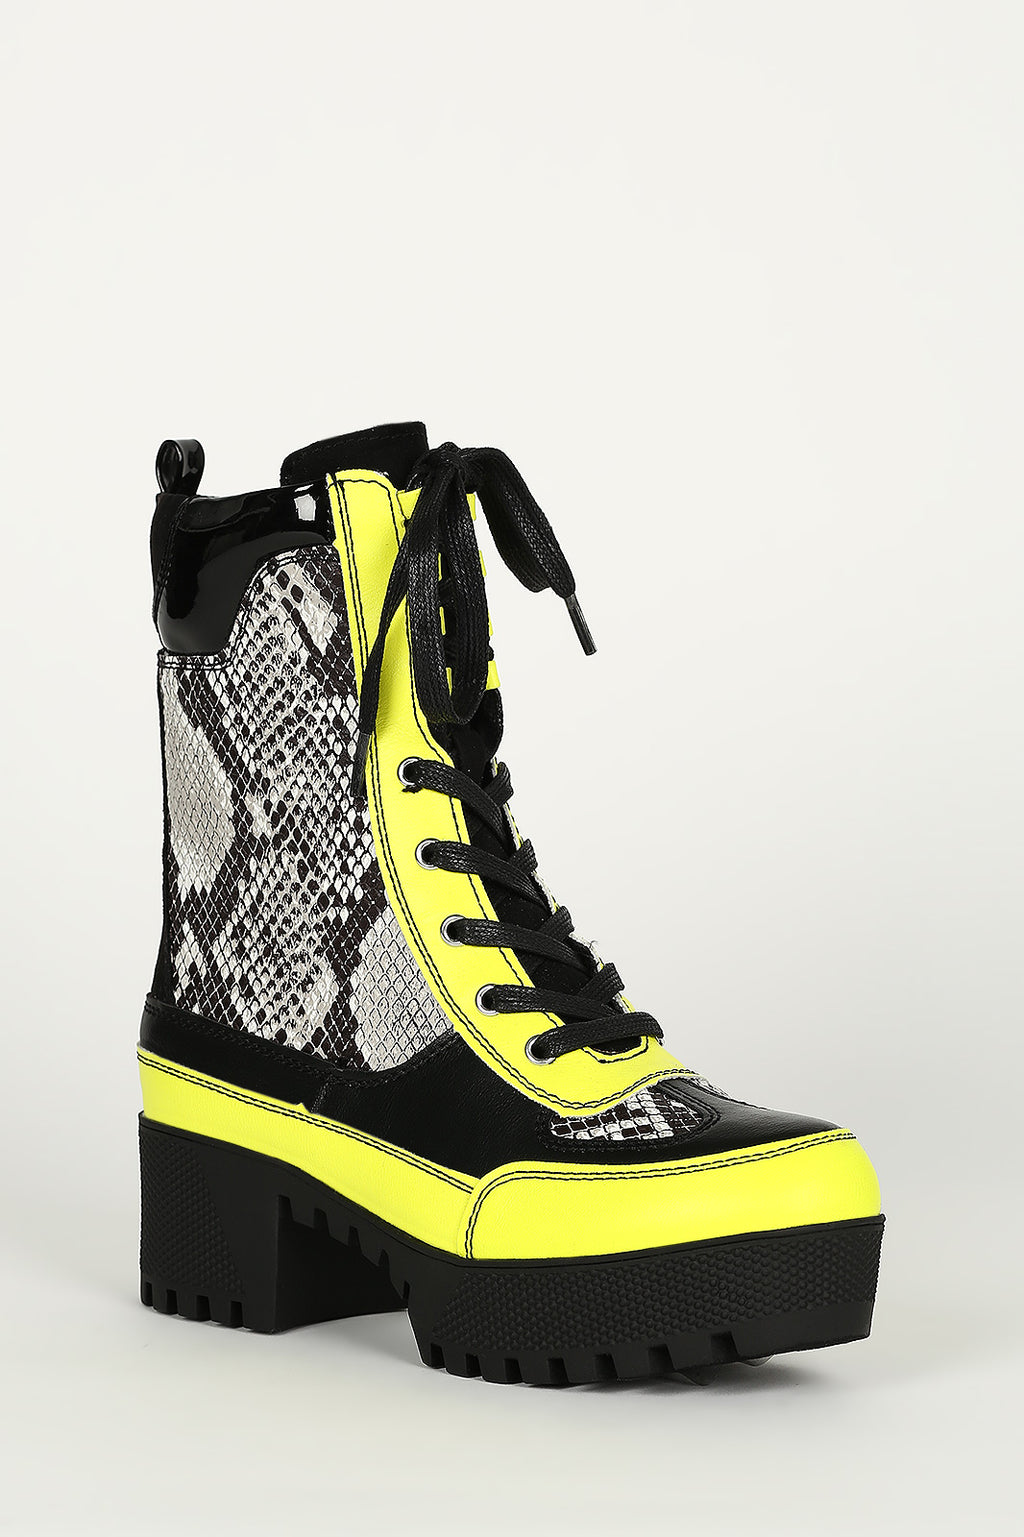 Bamboo Powerful-06 Neon Snake Lace Up Platform Lug Sole